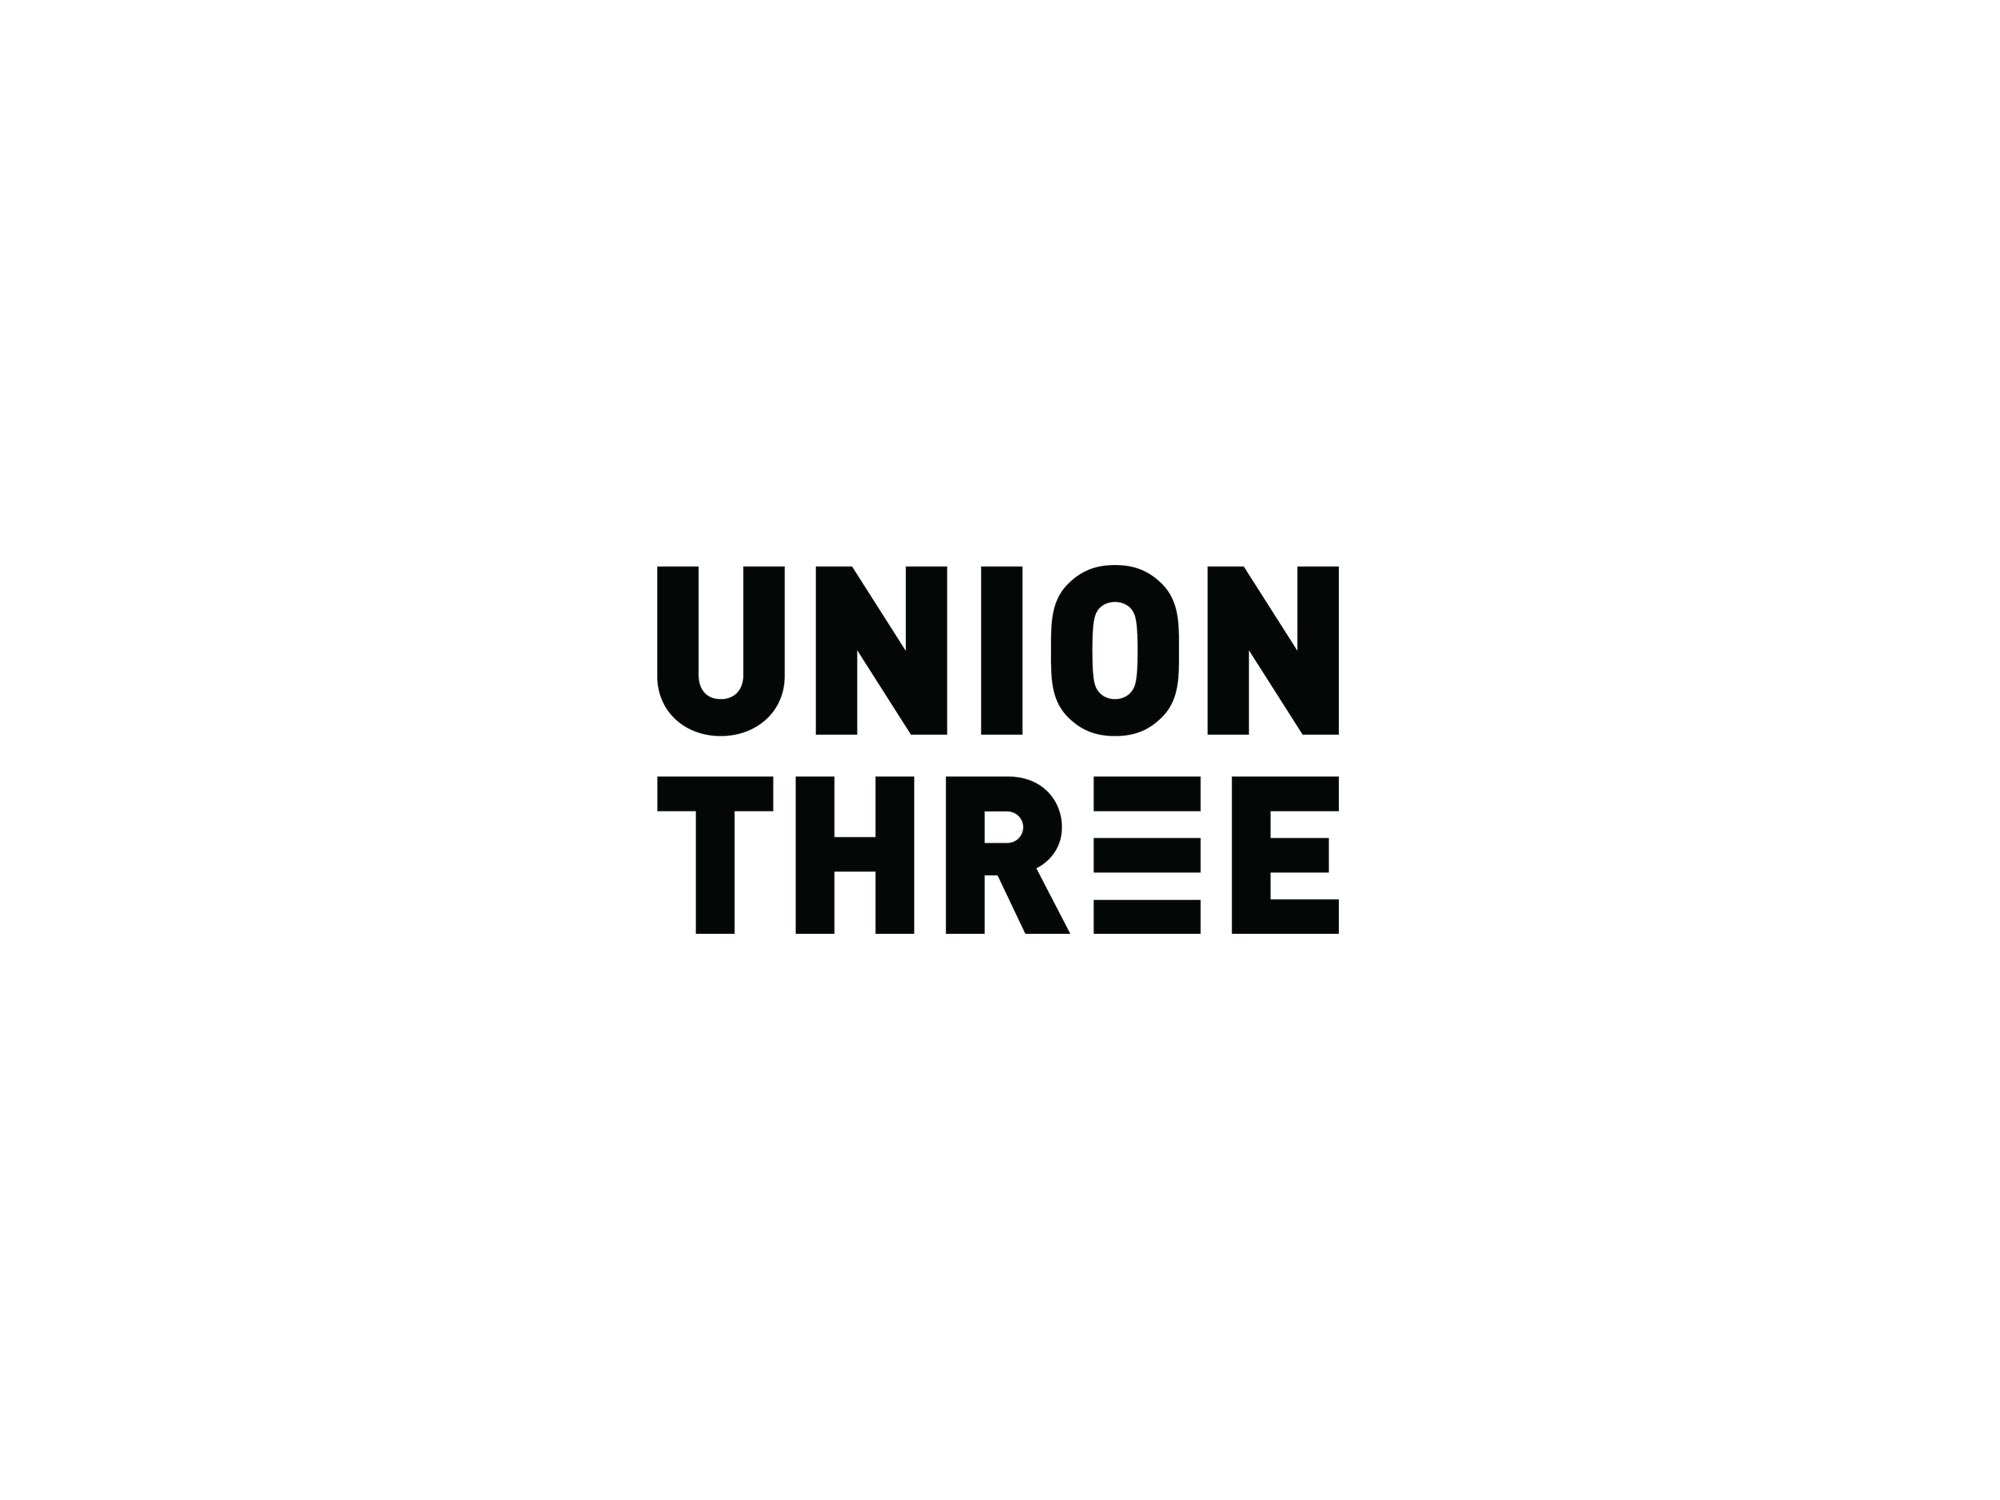 solmarkcreative-unionthree.jpg